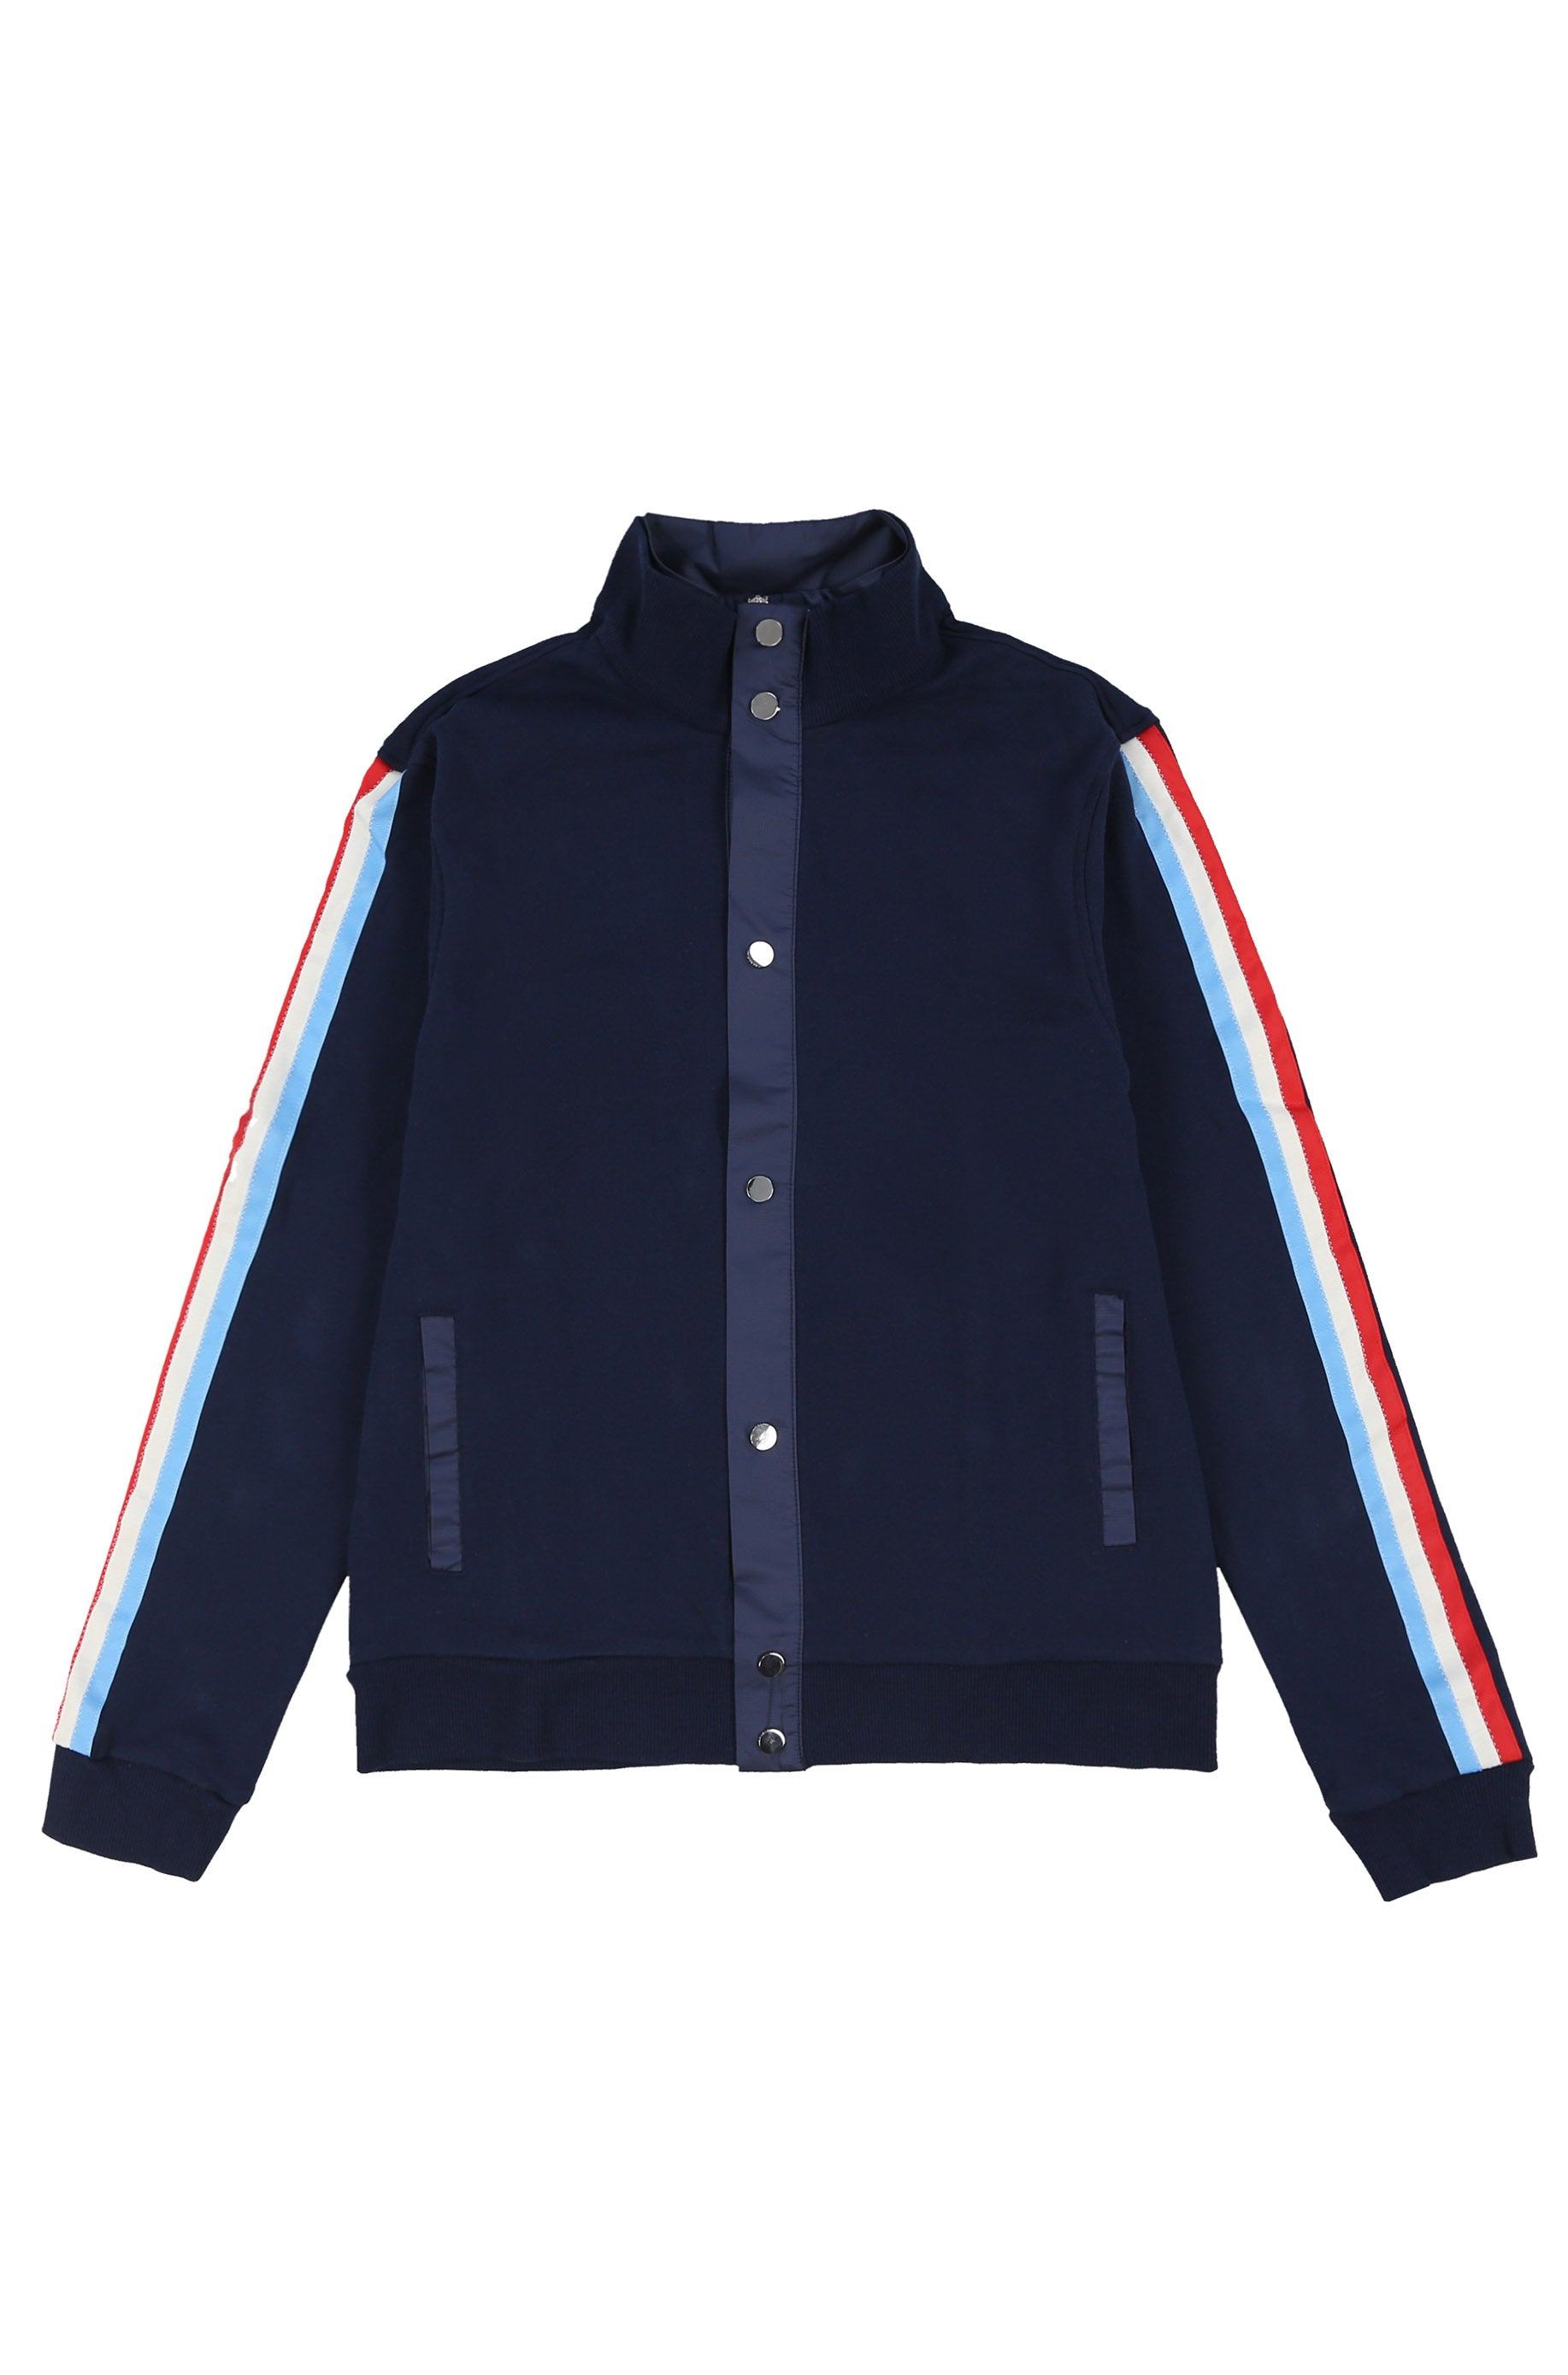 JOMO DOUBLE TRACK JACKET (NAVY)